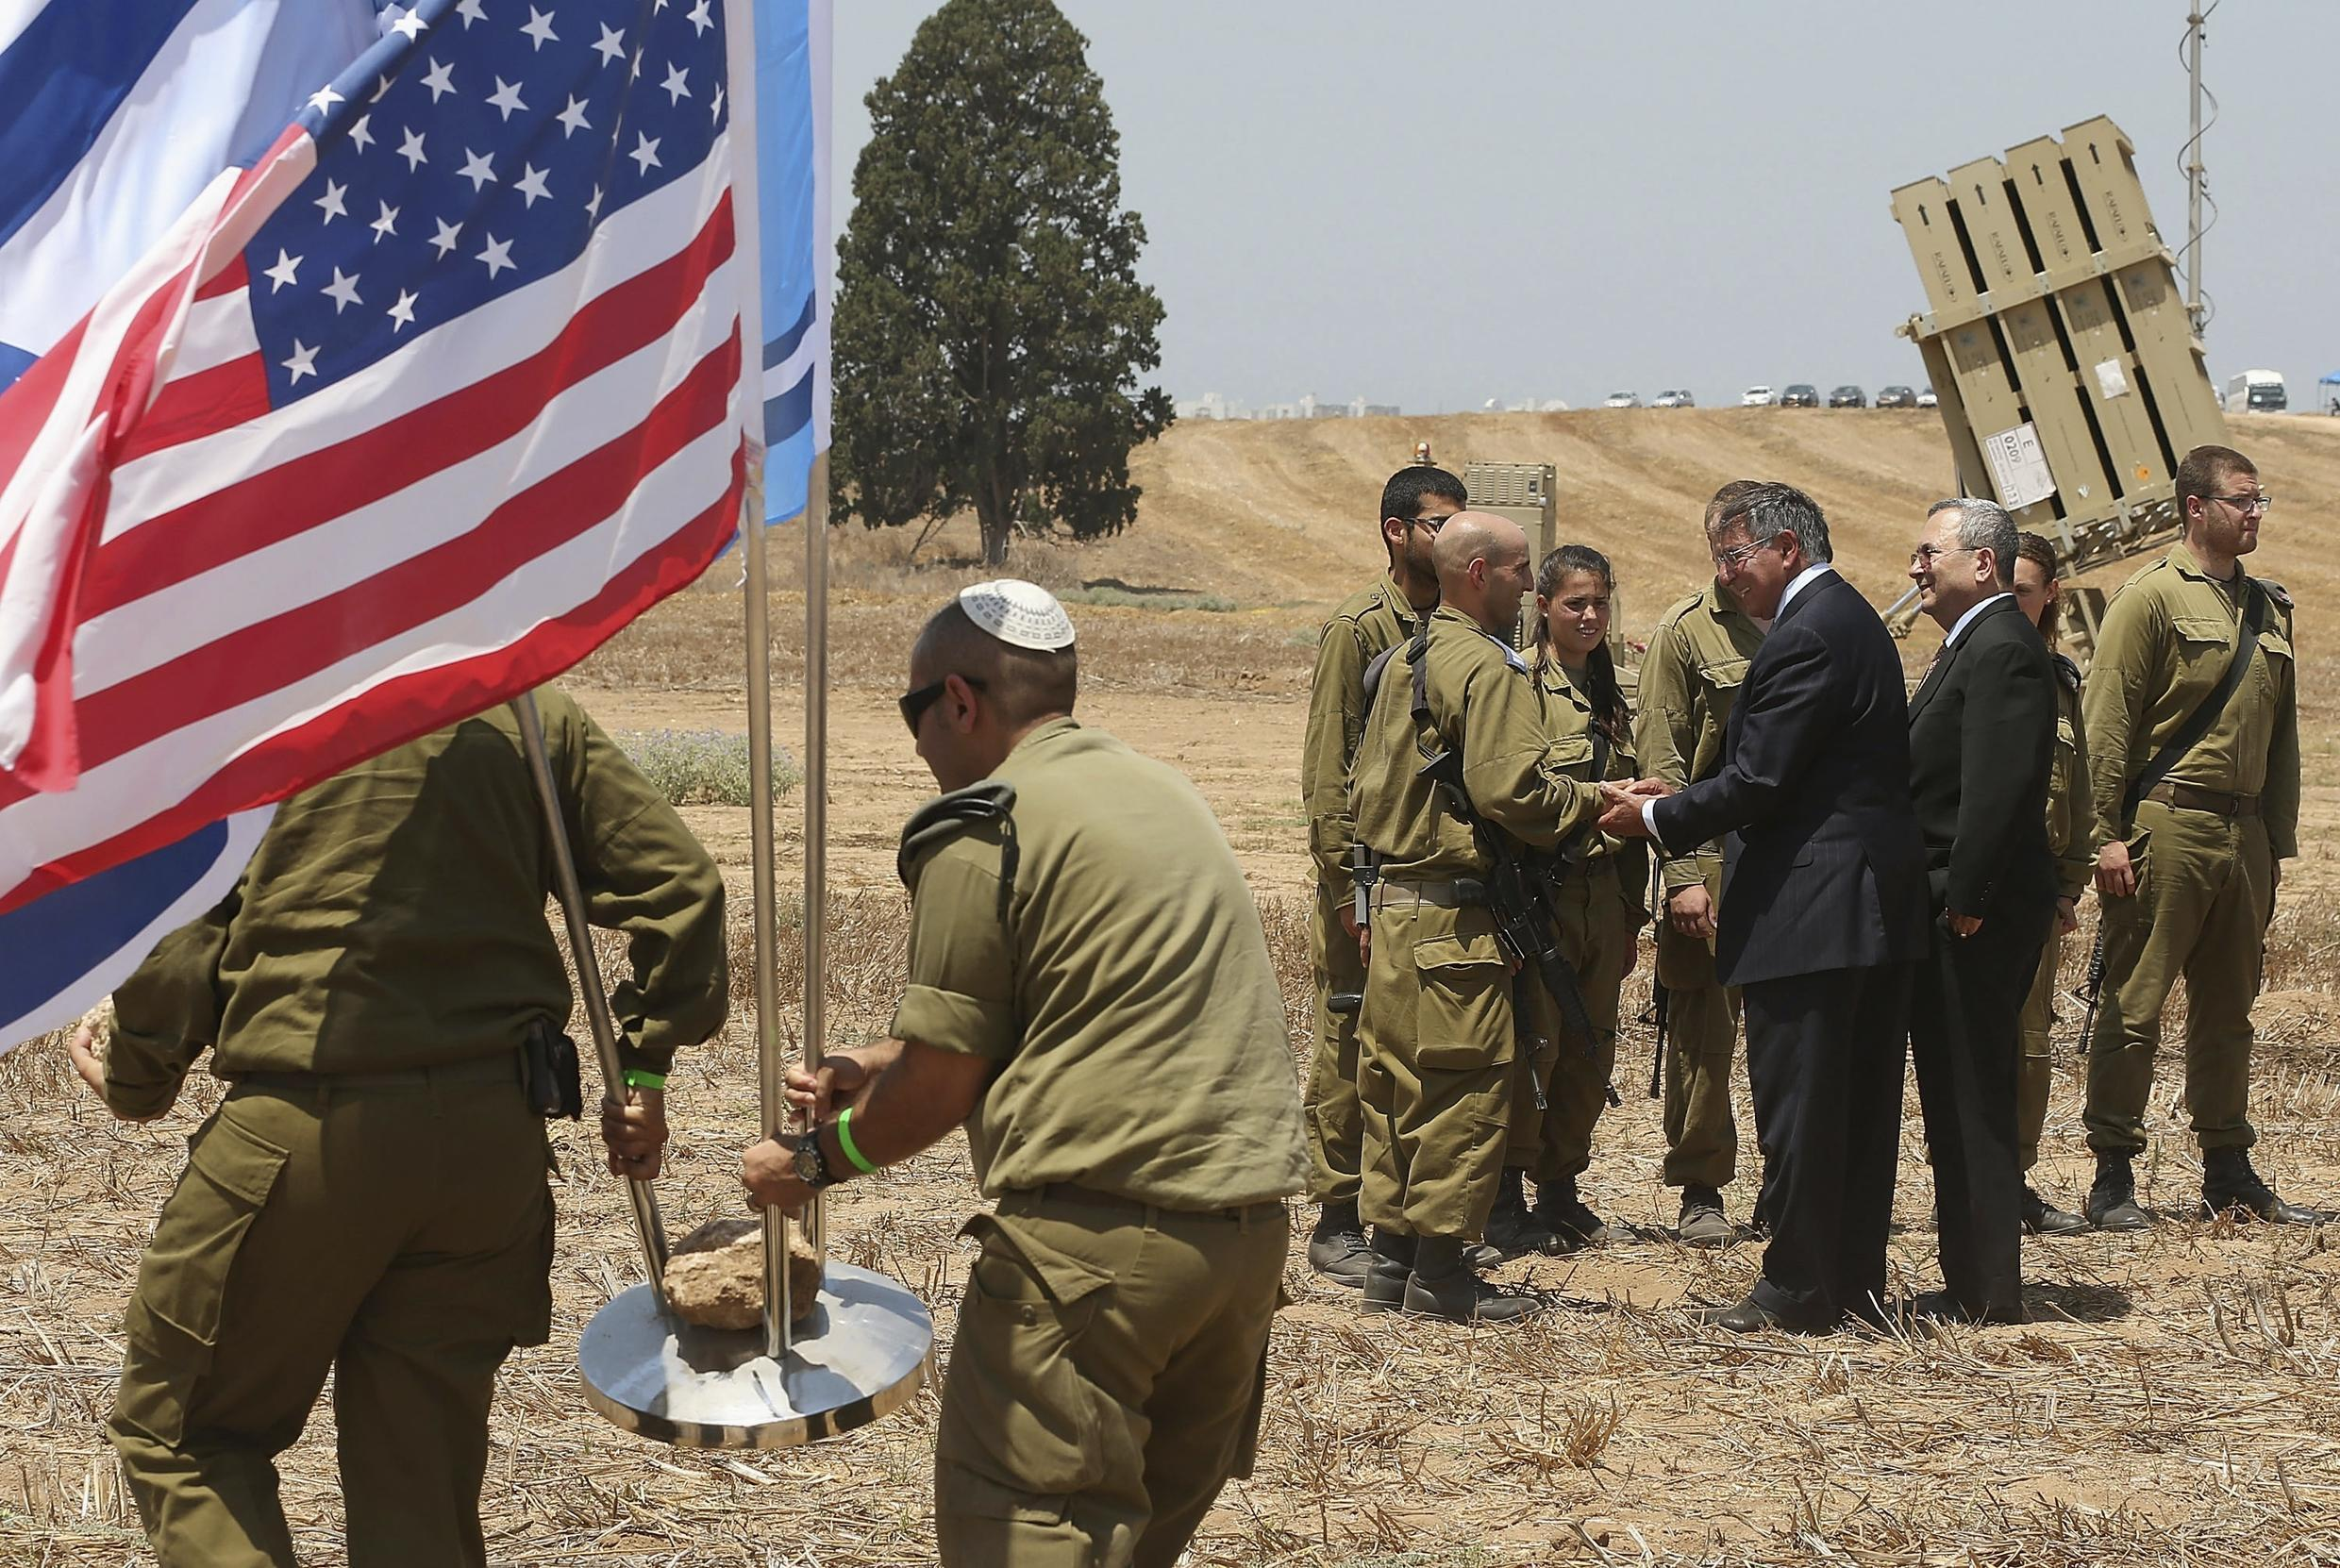 US Defense Secretary Leon Panetta and Israeli Defense Minister Ehud Barak greet Israeli soldiers after a joint news conference during a visit to the Iron Dome defense system launch site in Ashkelon